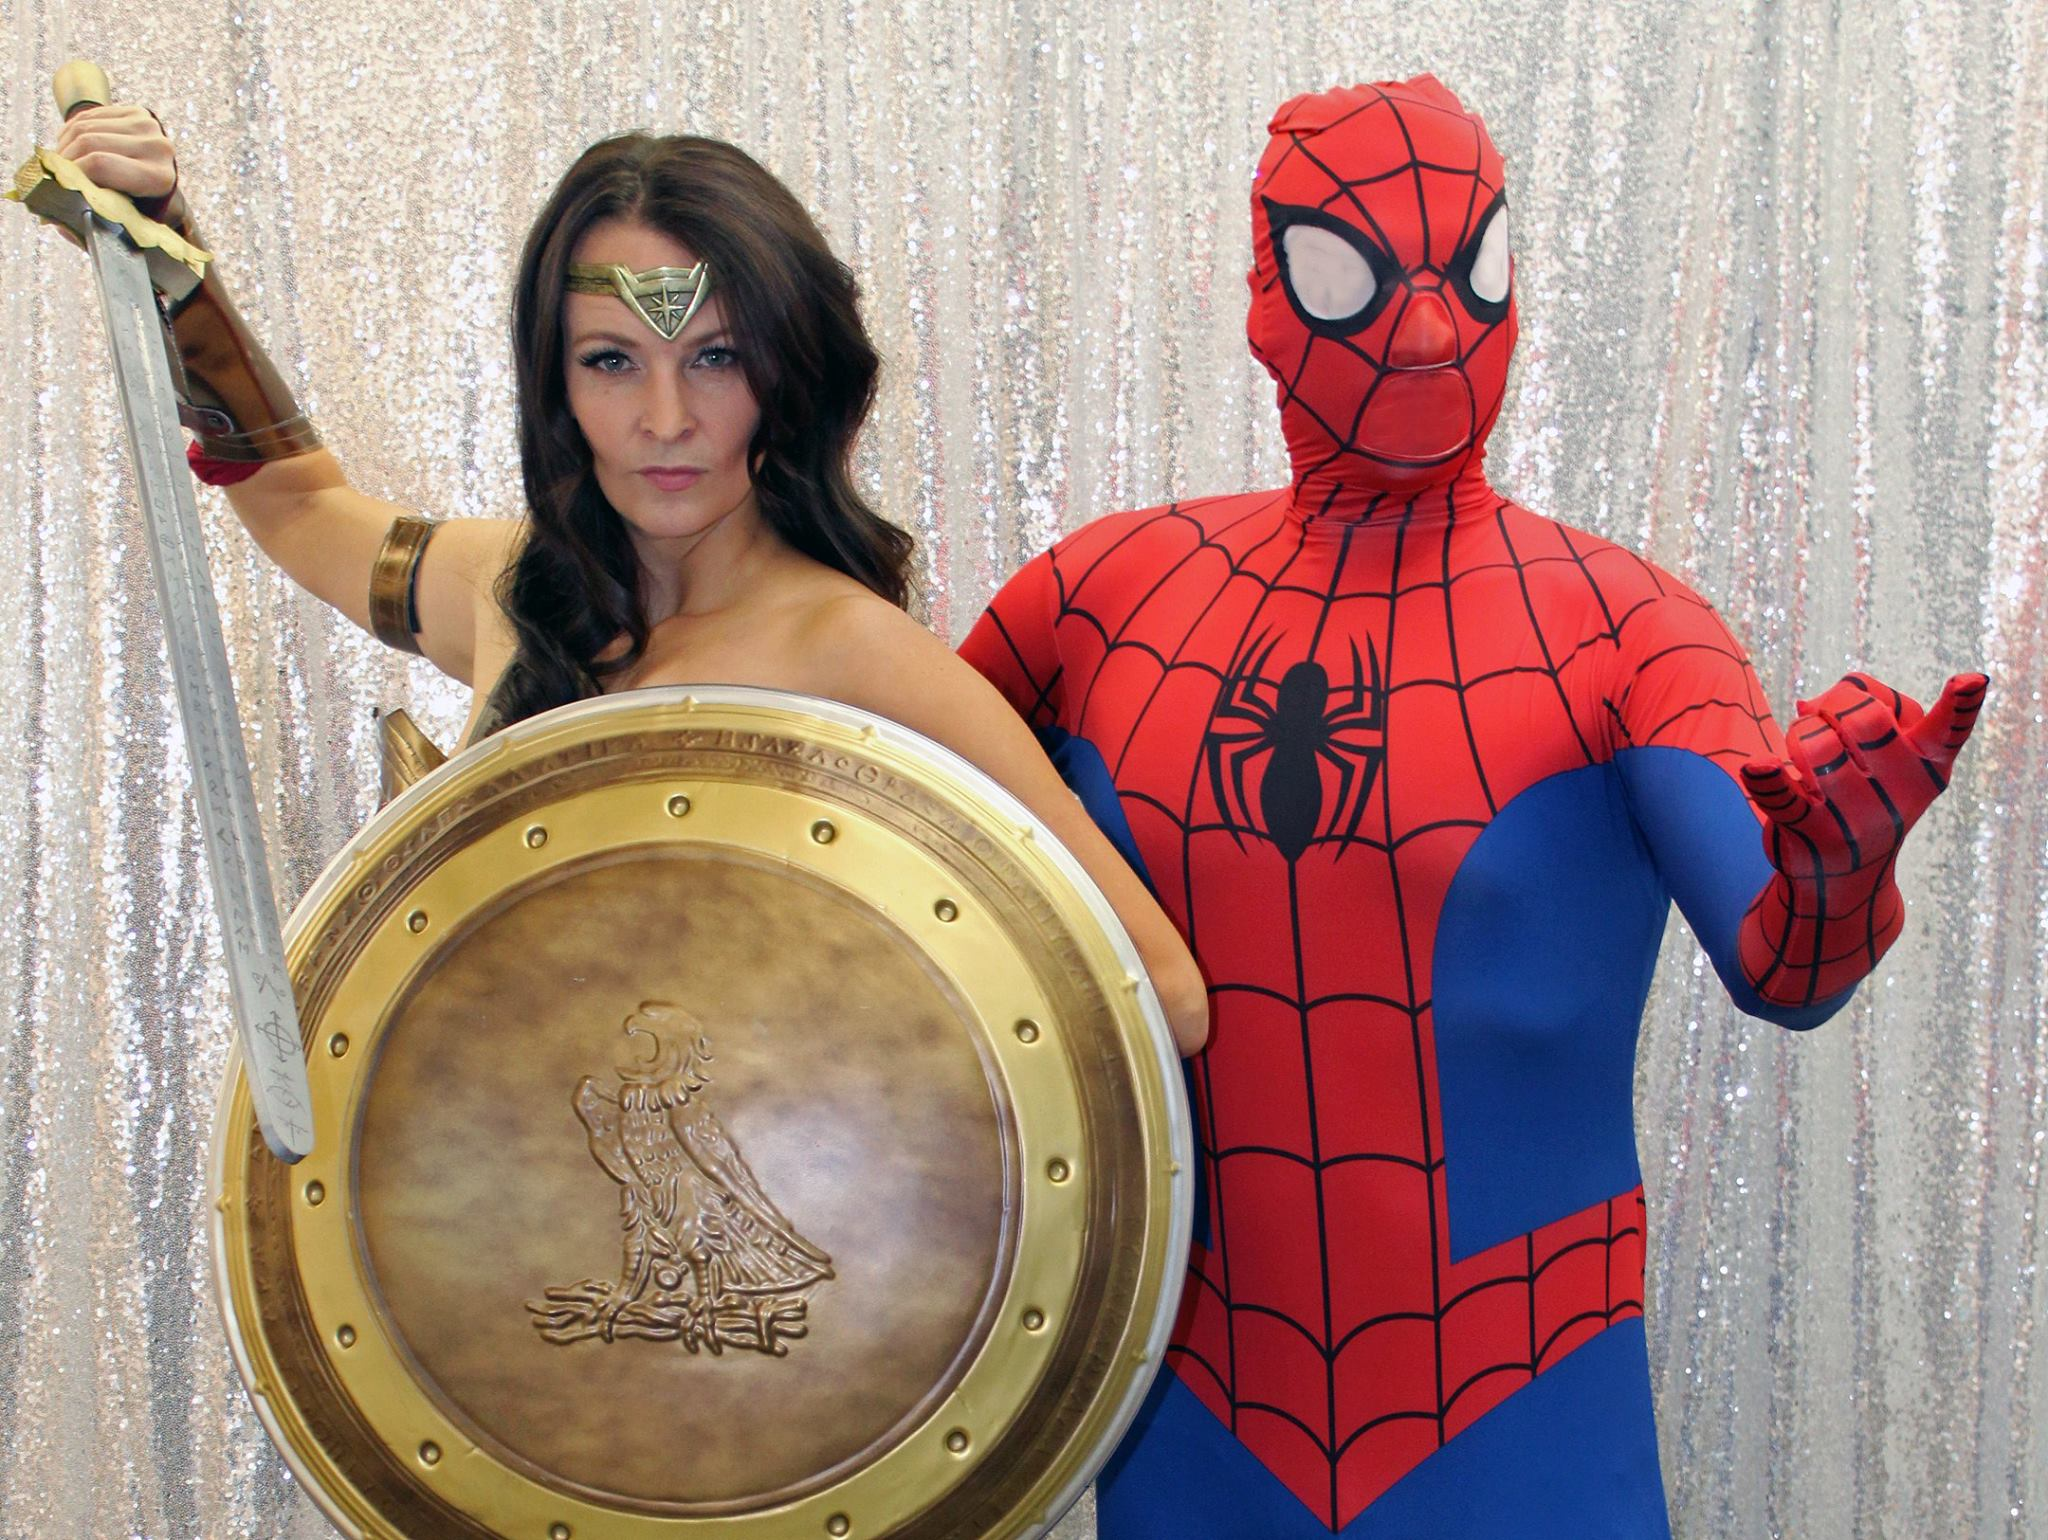 Wonder Woman and Spiderman Live